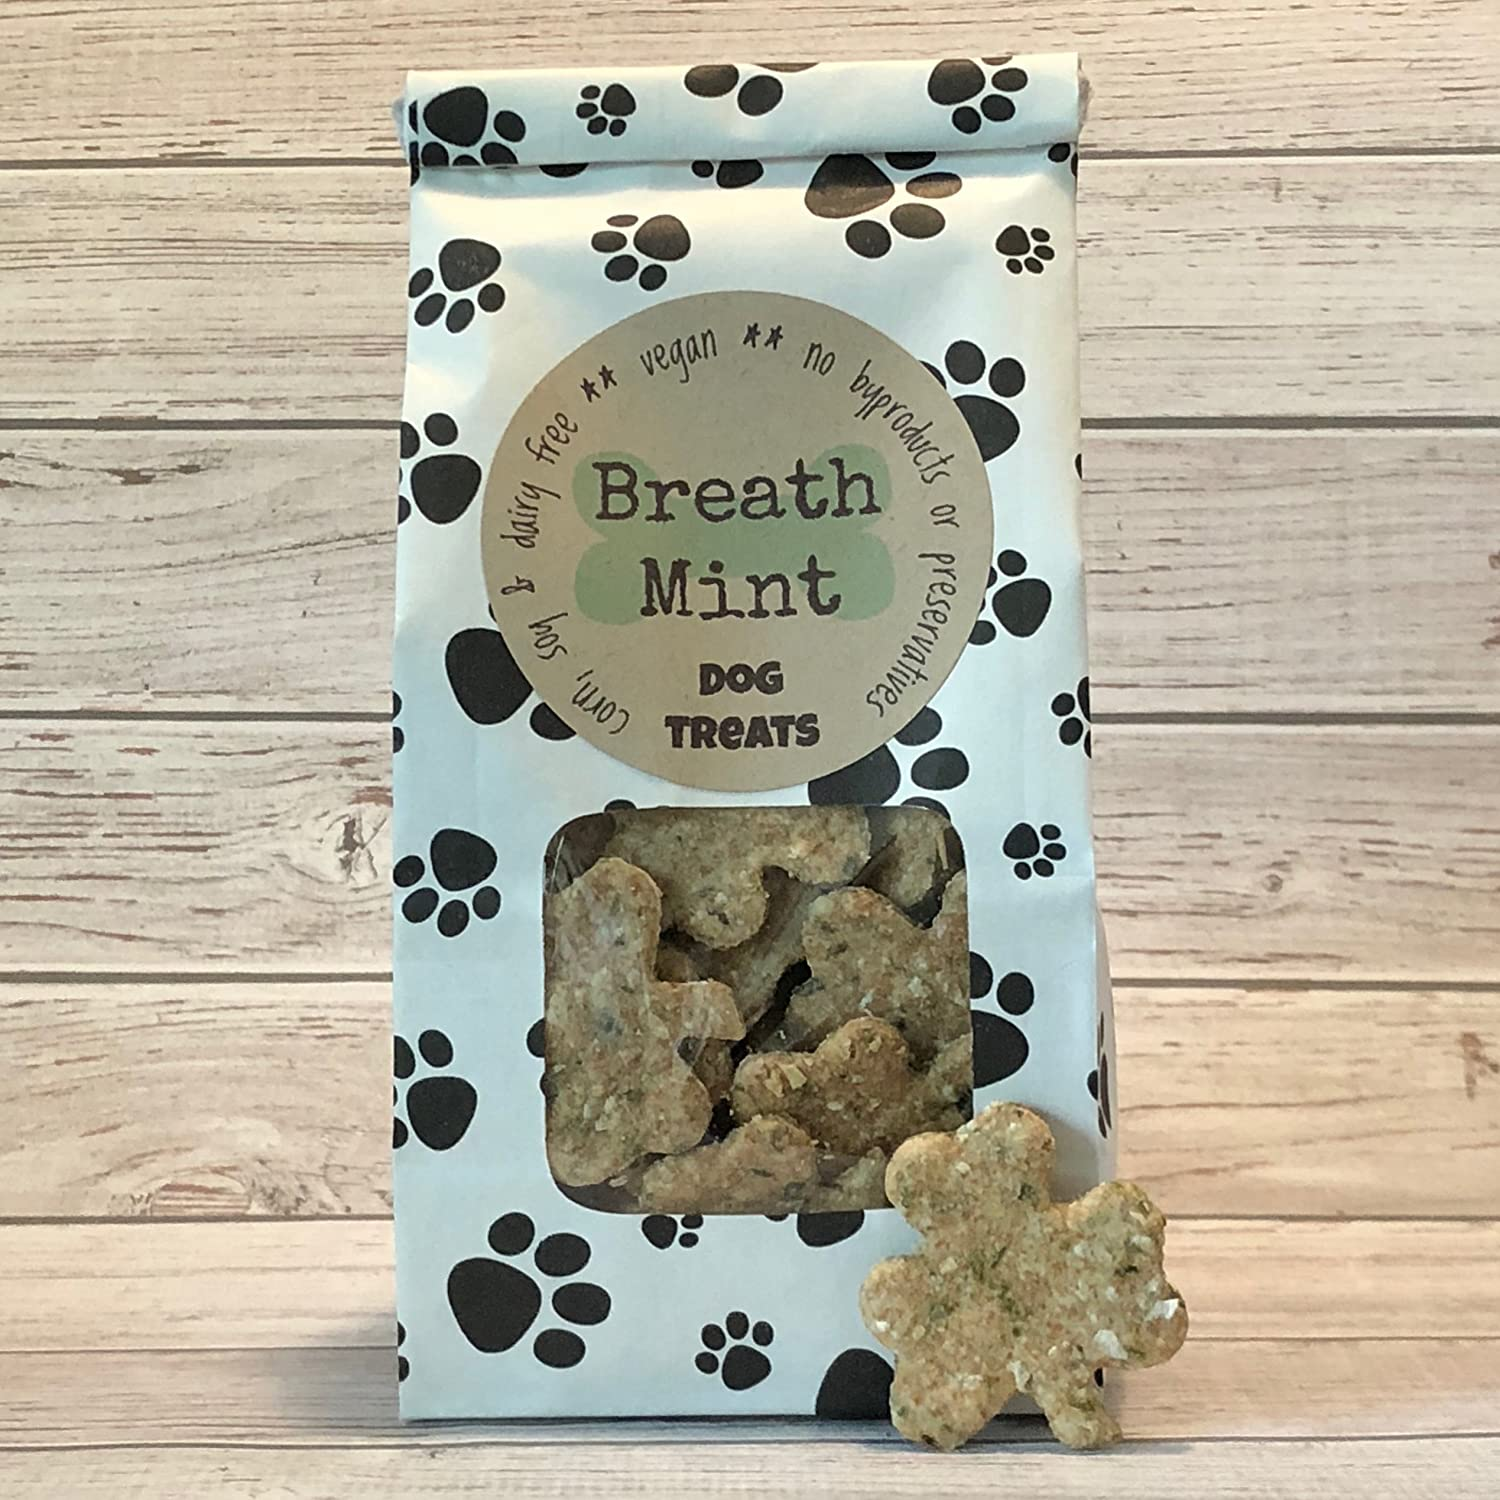 5 oz Breath Mint Dog Treats/Handmade/Corn Soy and Dairy Free/Egg Free/Vegan/No Added Preservatives, Fillers or Color